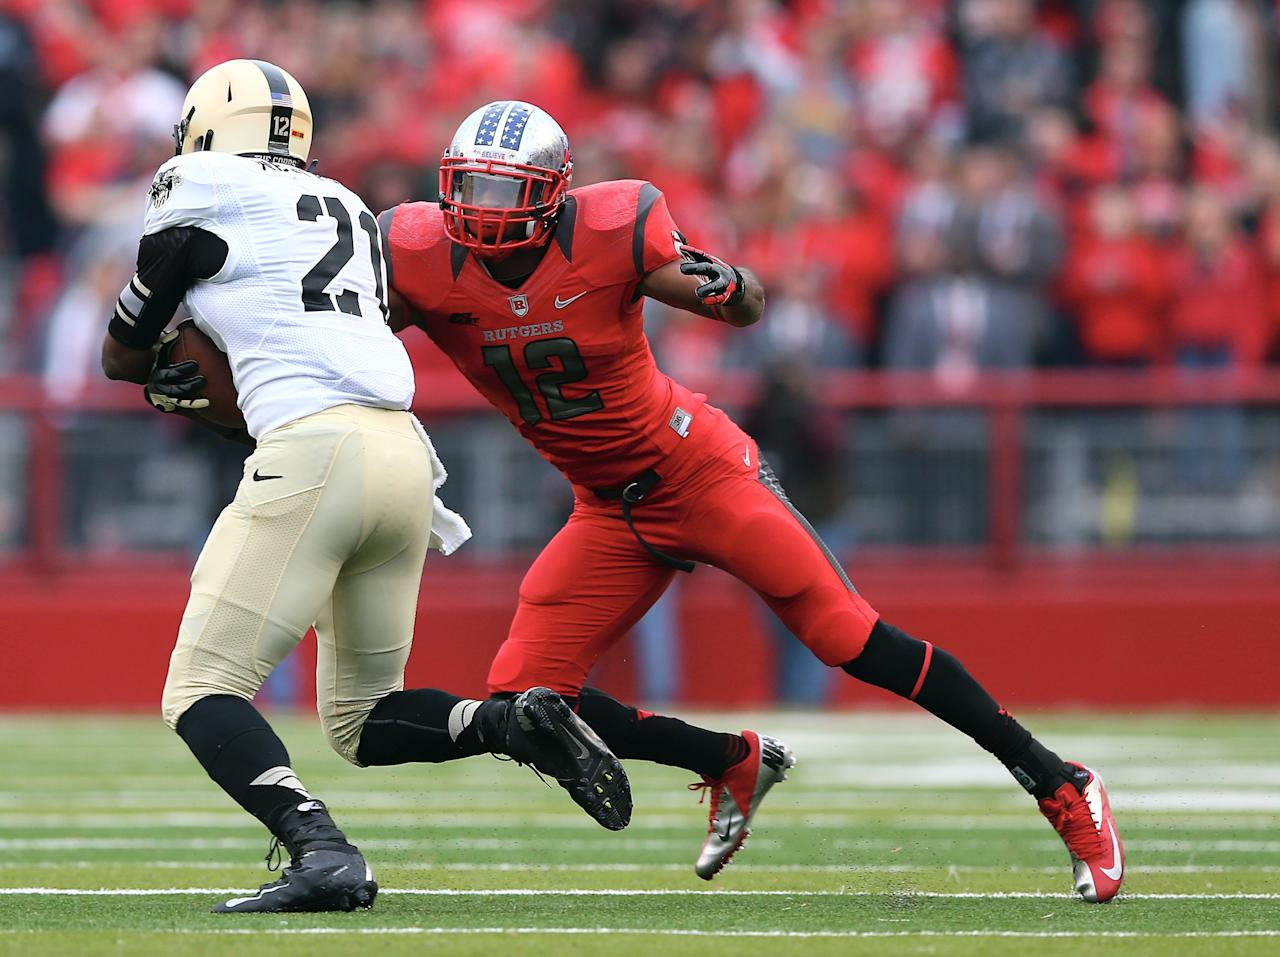 PISCATAWAY, NJ - NOVEMBER 10:  Marcus Cooper #12 of the Rutgers Scarlet Knights tackles Chevaughn Lawrence #21 of the Army Black Knights   on November 10, 2012 at High Point Solutions Stadium in Piscataway, New Jersey.The Rutgers Scarlet Knights defeated the Army Black Knights 28-7.  (Photo by Elsa/Getty Images)